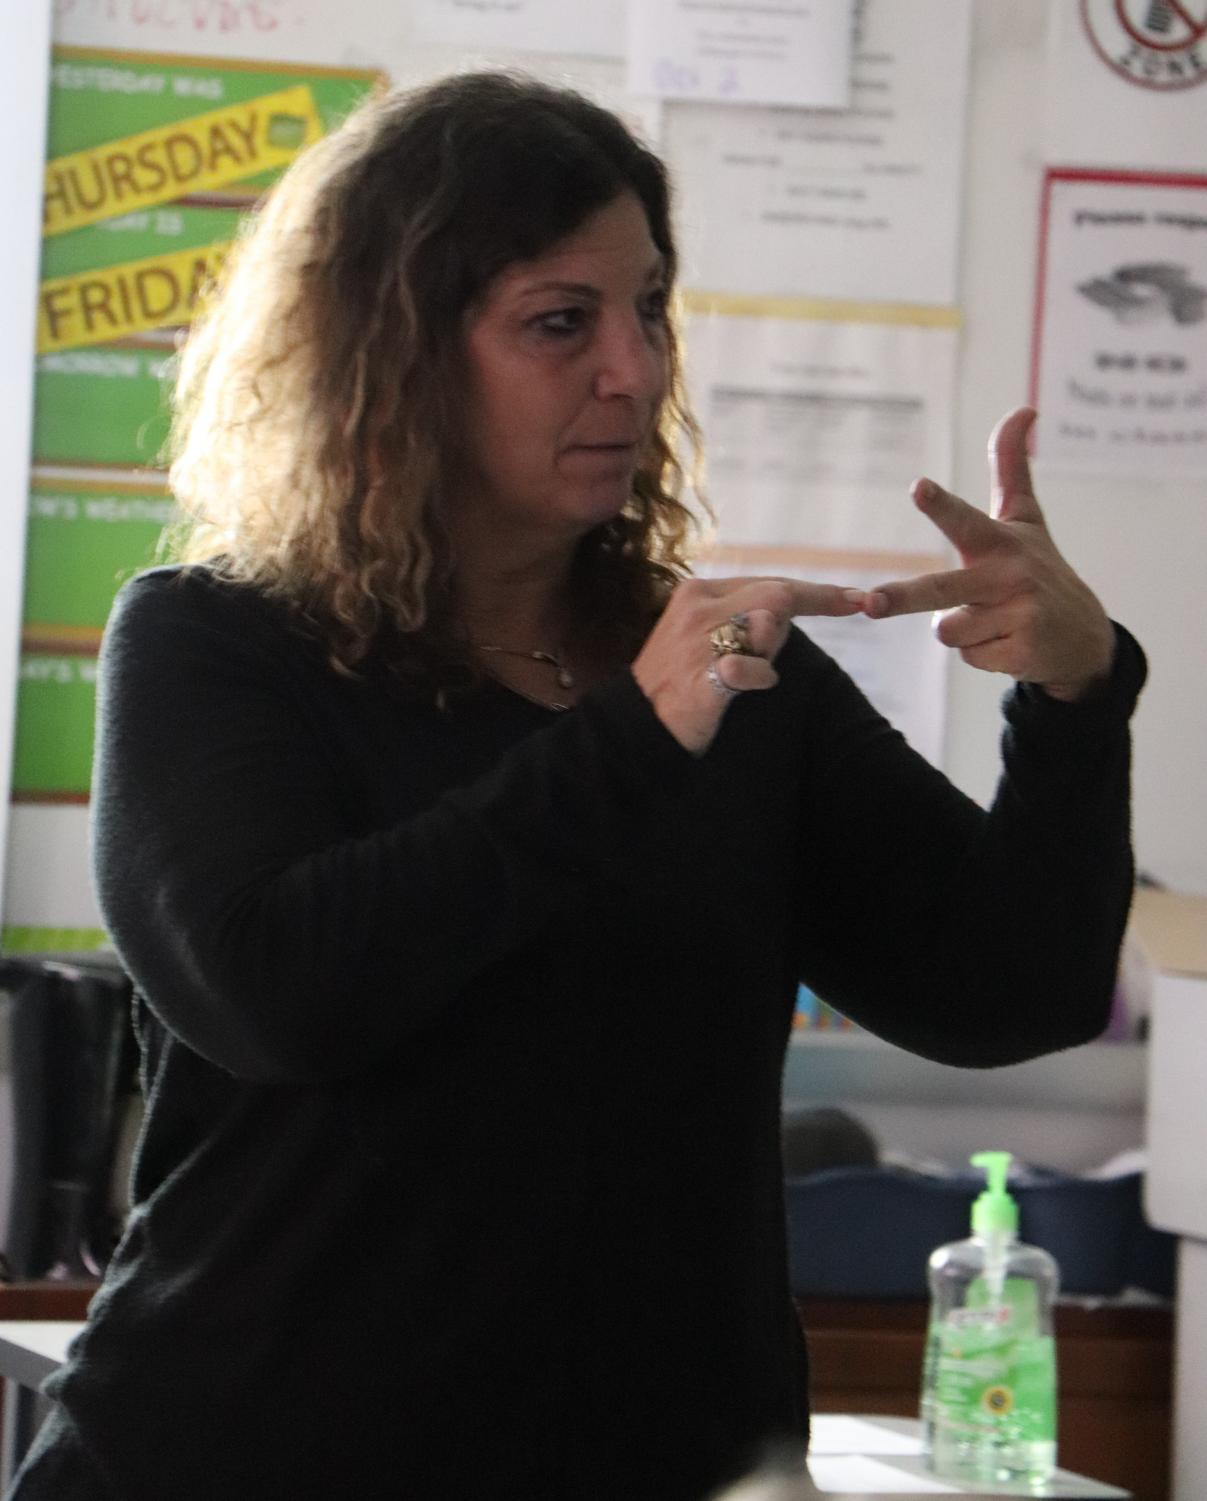 Chaves is teaching her ASL 2 class. She is showing  them how to sign a song.